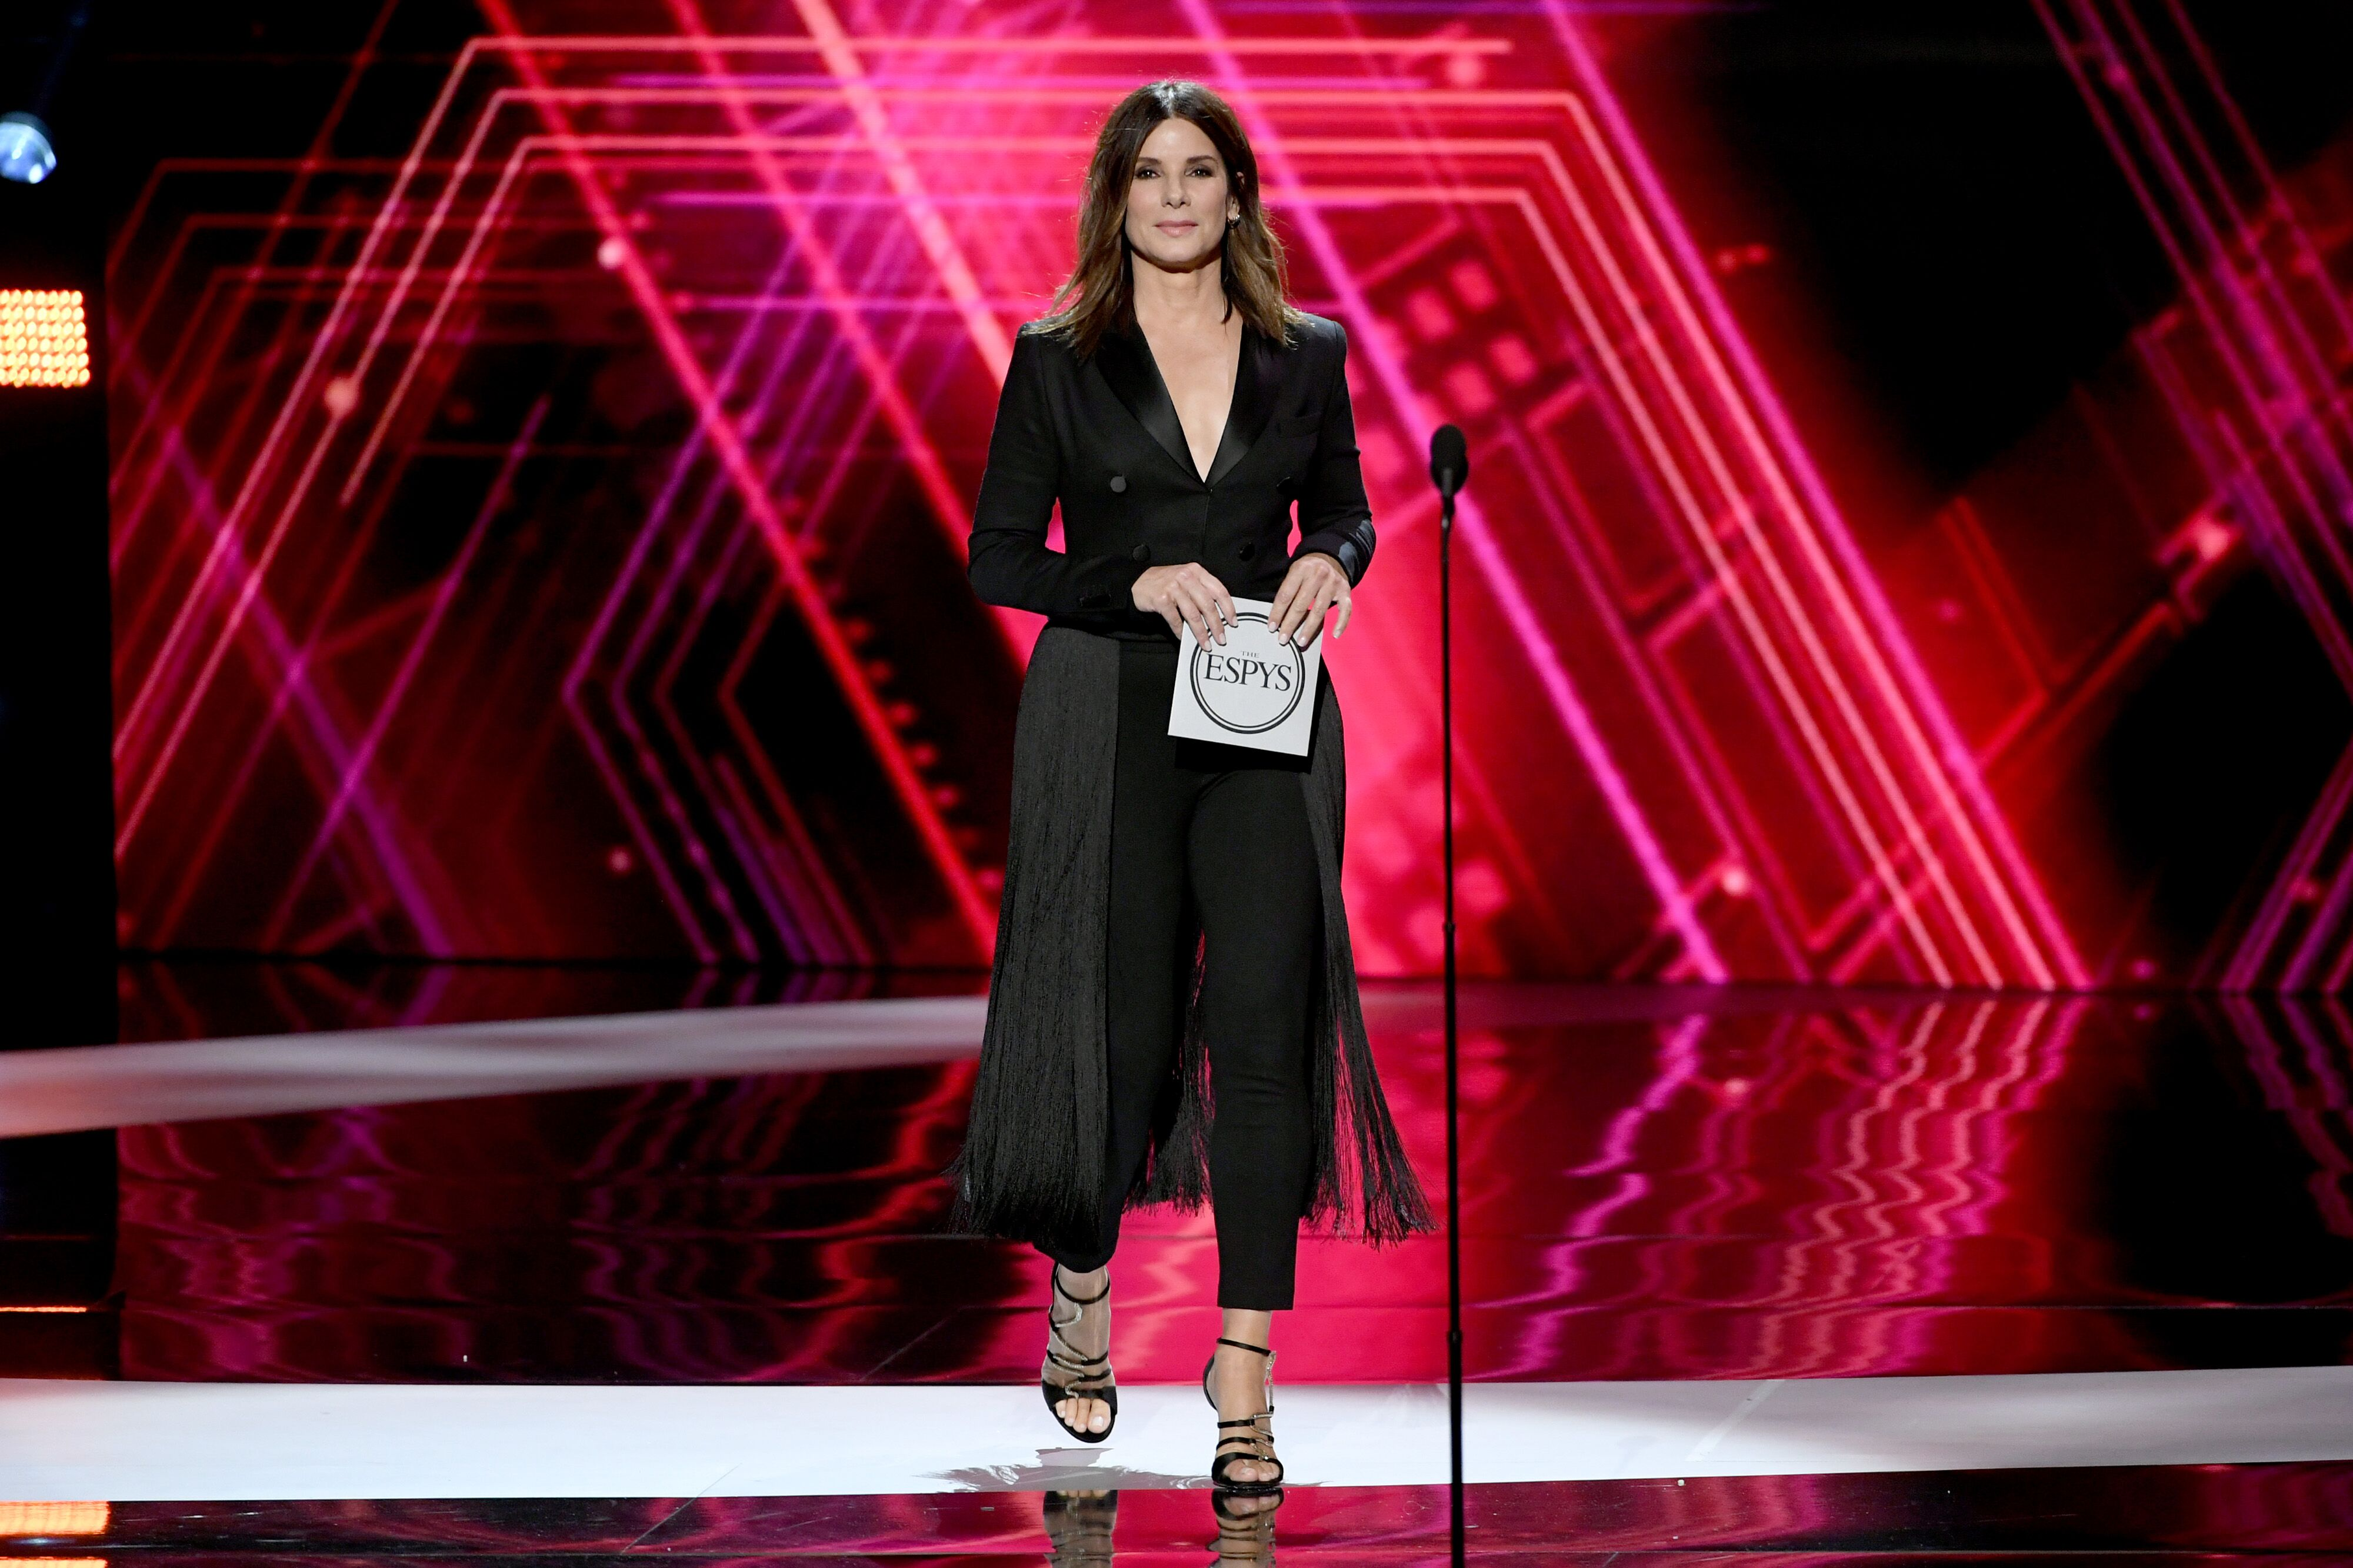 Sandra Bullock at the ESPY Awards. | Source: Getty Images